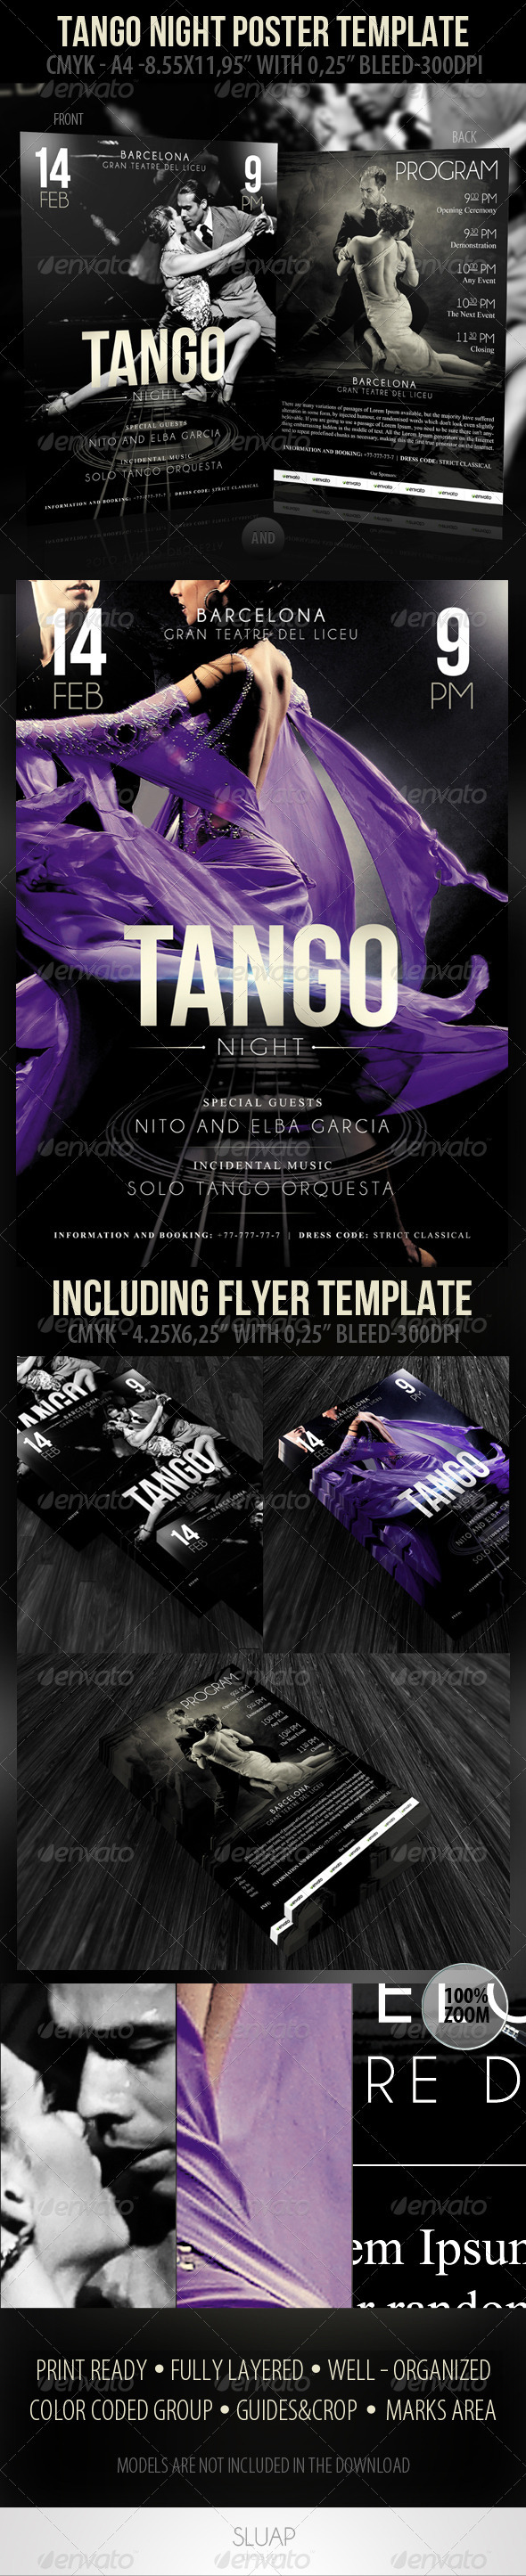 Tango Night Poster Template & Tango Night-Flyer Te - Events Flyers